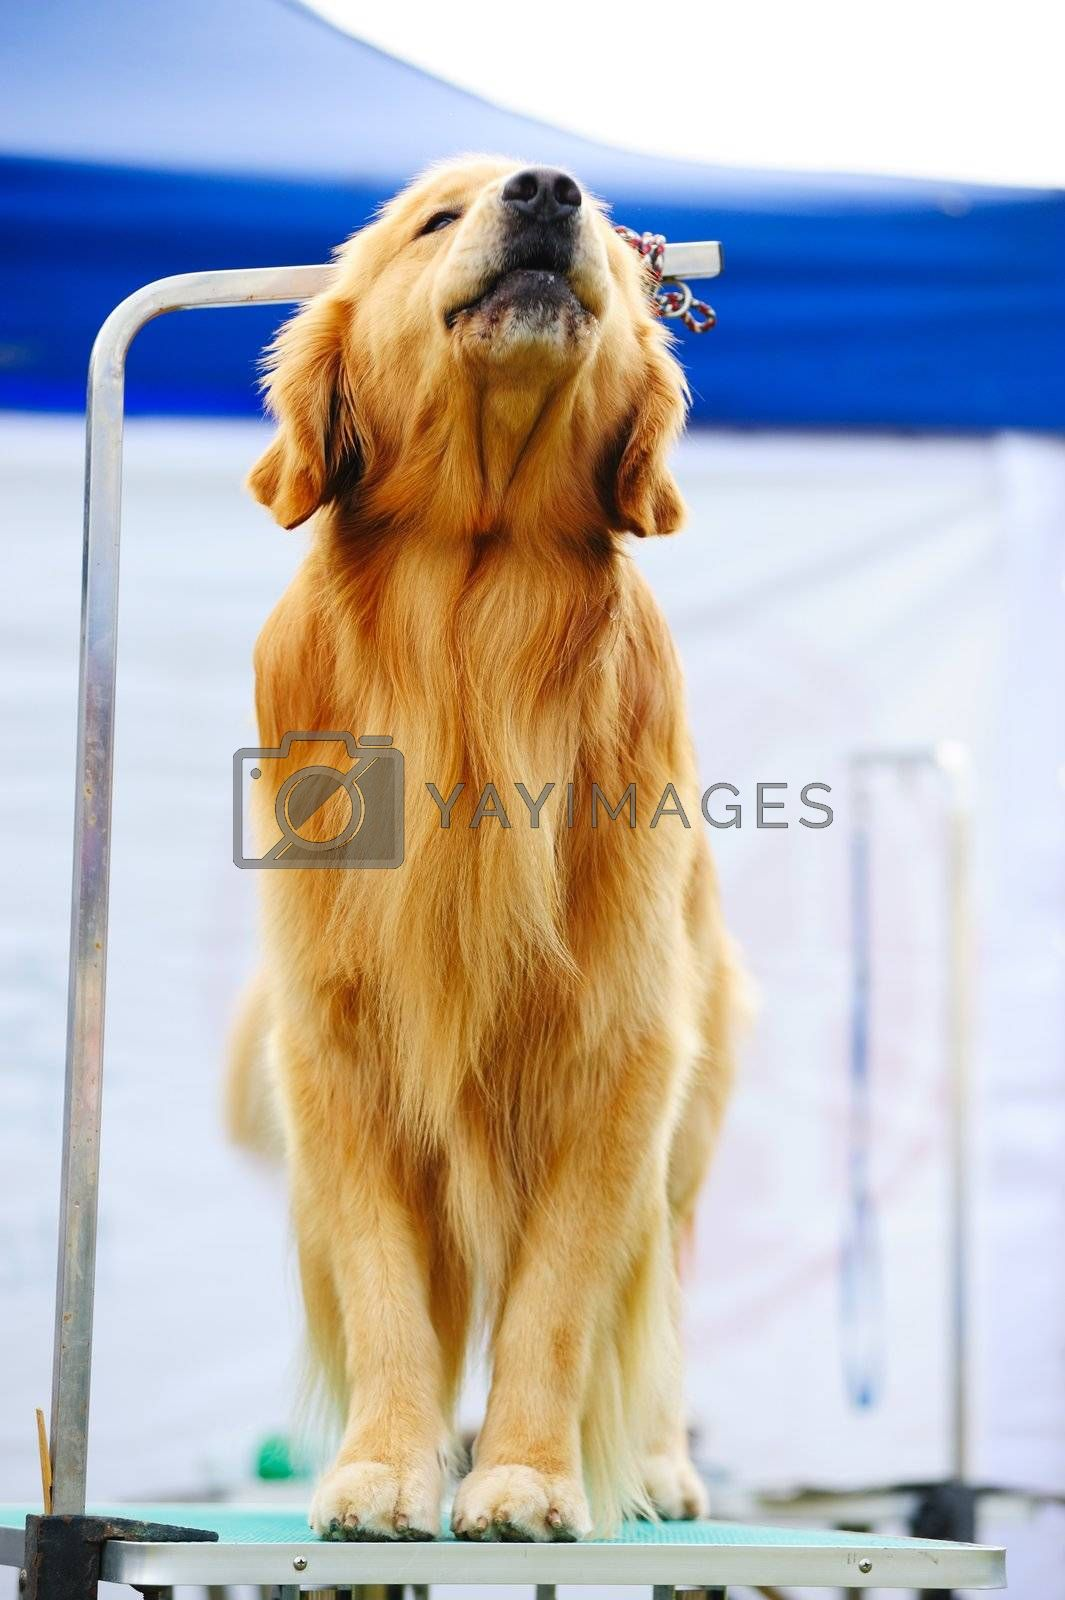 Golden retriever dog standing on the table